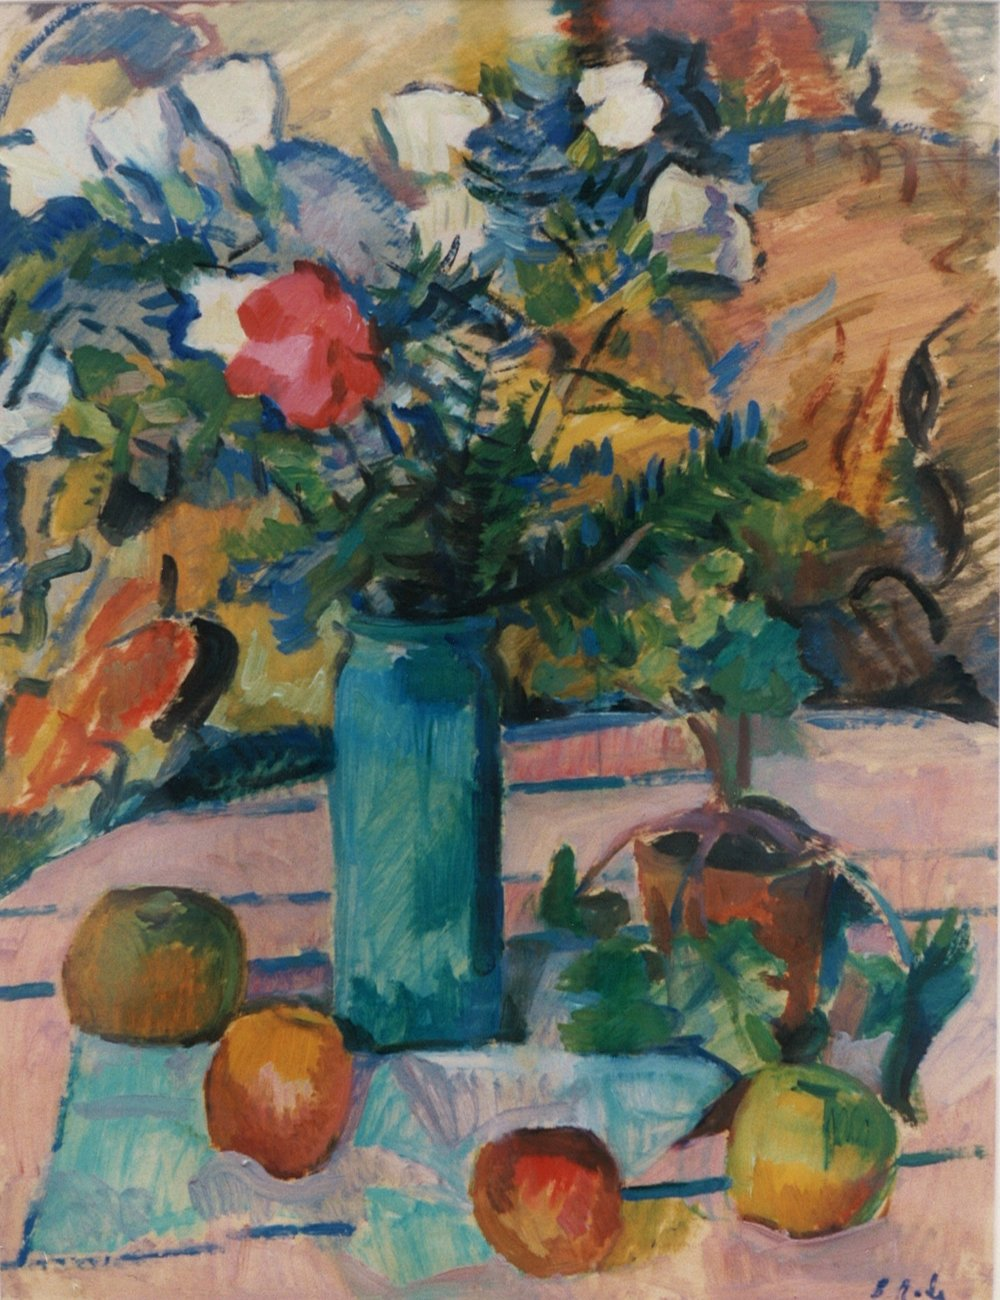 Still Life, Barbara (Zouzouline) Rodé, oil on canvas, 1983.03.01